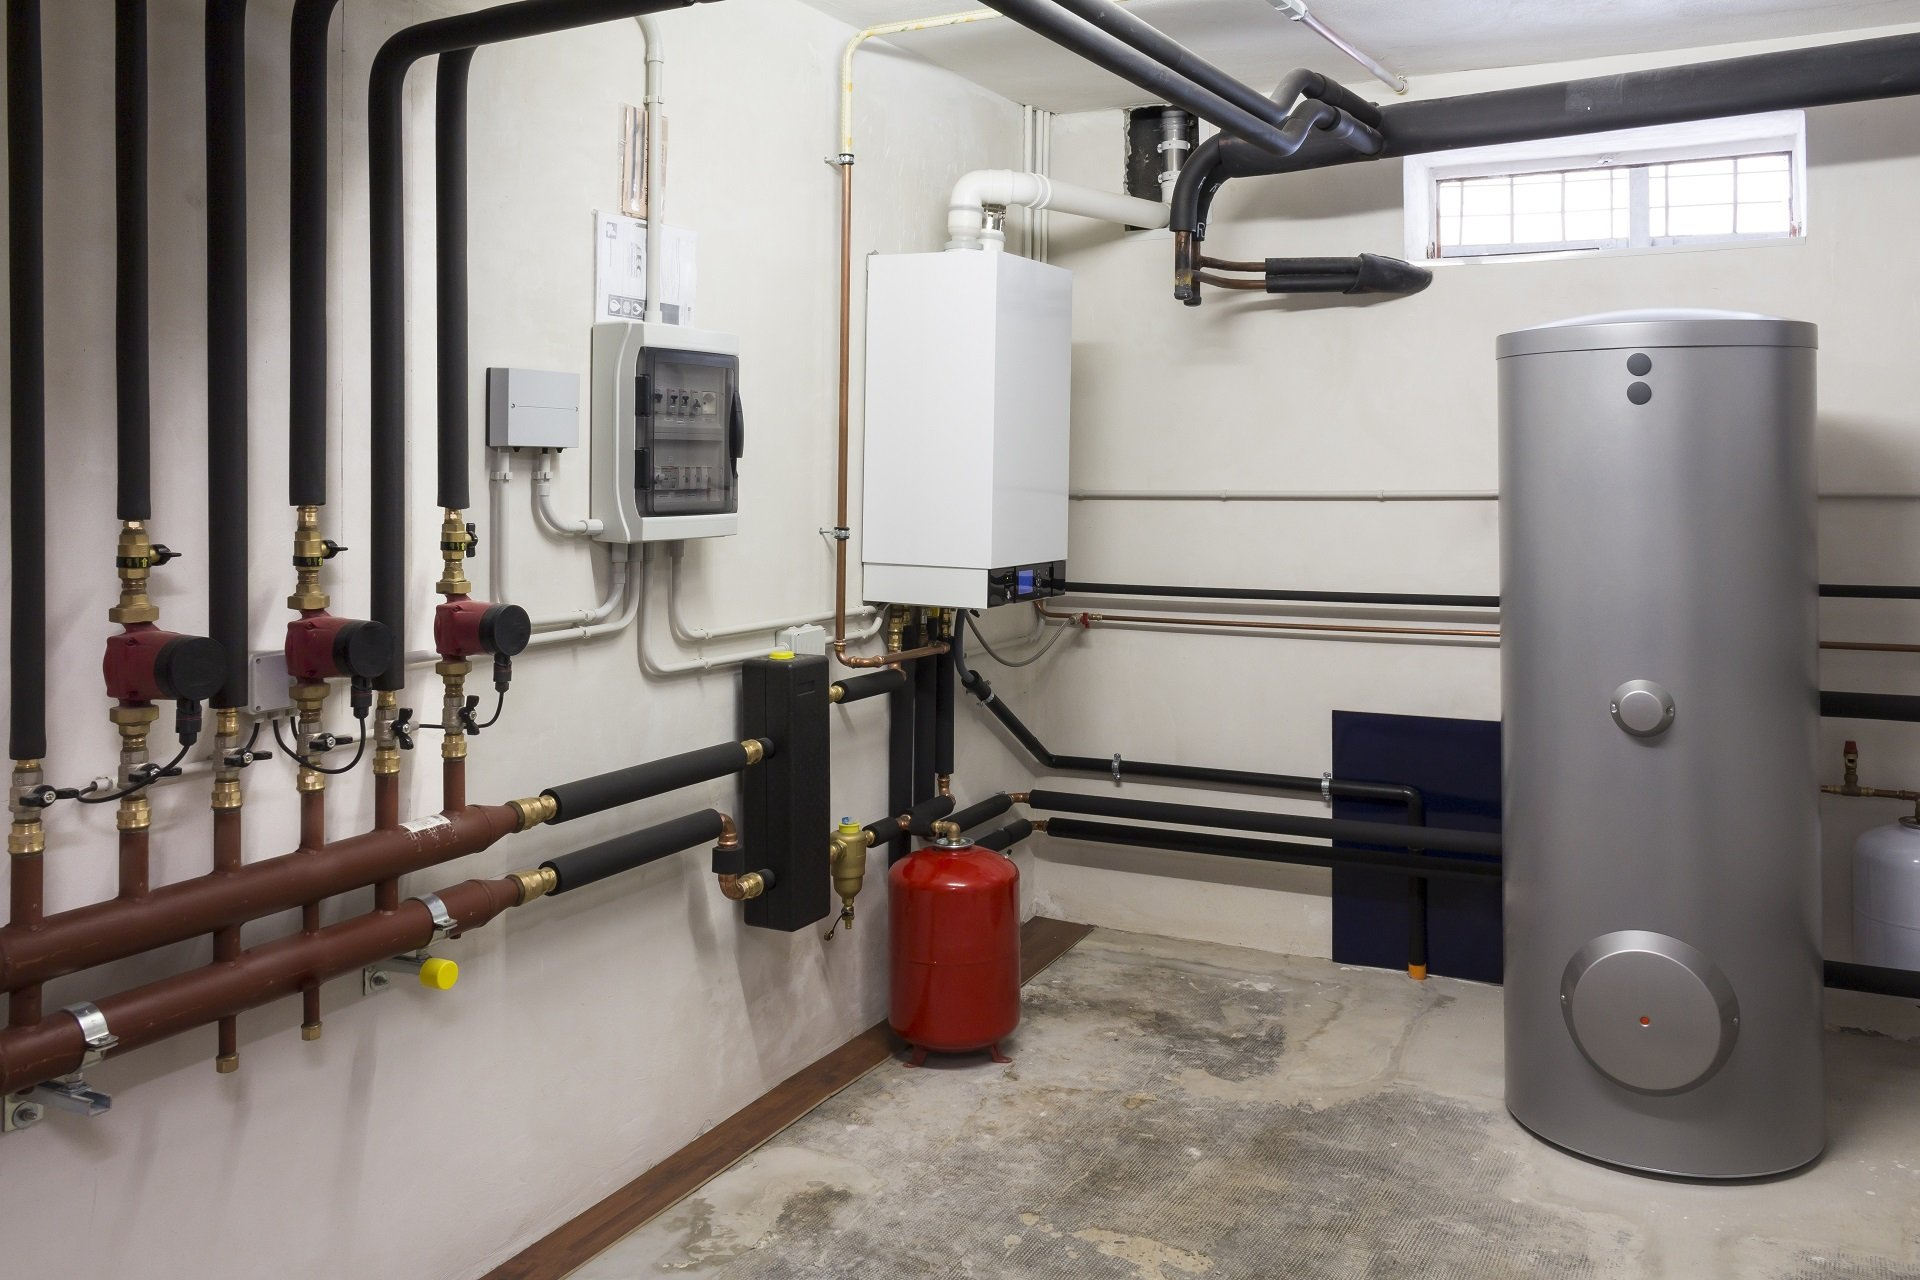 How Do Indirect Water Heaters Work?